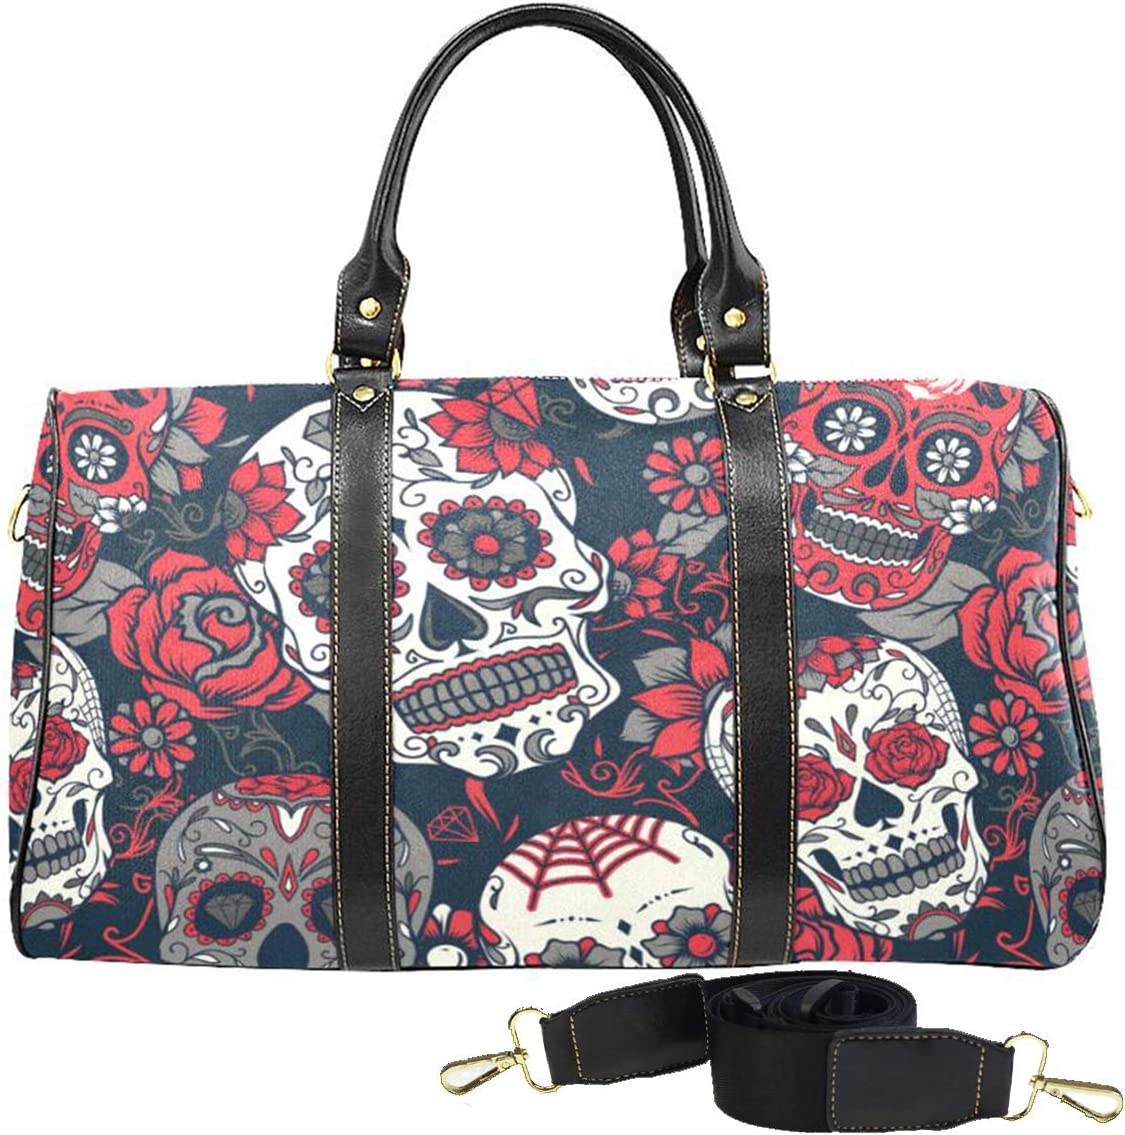 Skulls And Bones Halloween Travel Duffel Bag Waterproof Fashion Lightweight Large Capacity Portable Luggage Bag